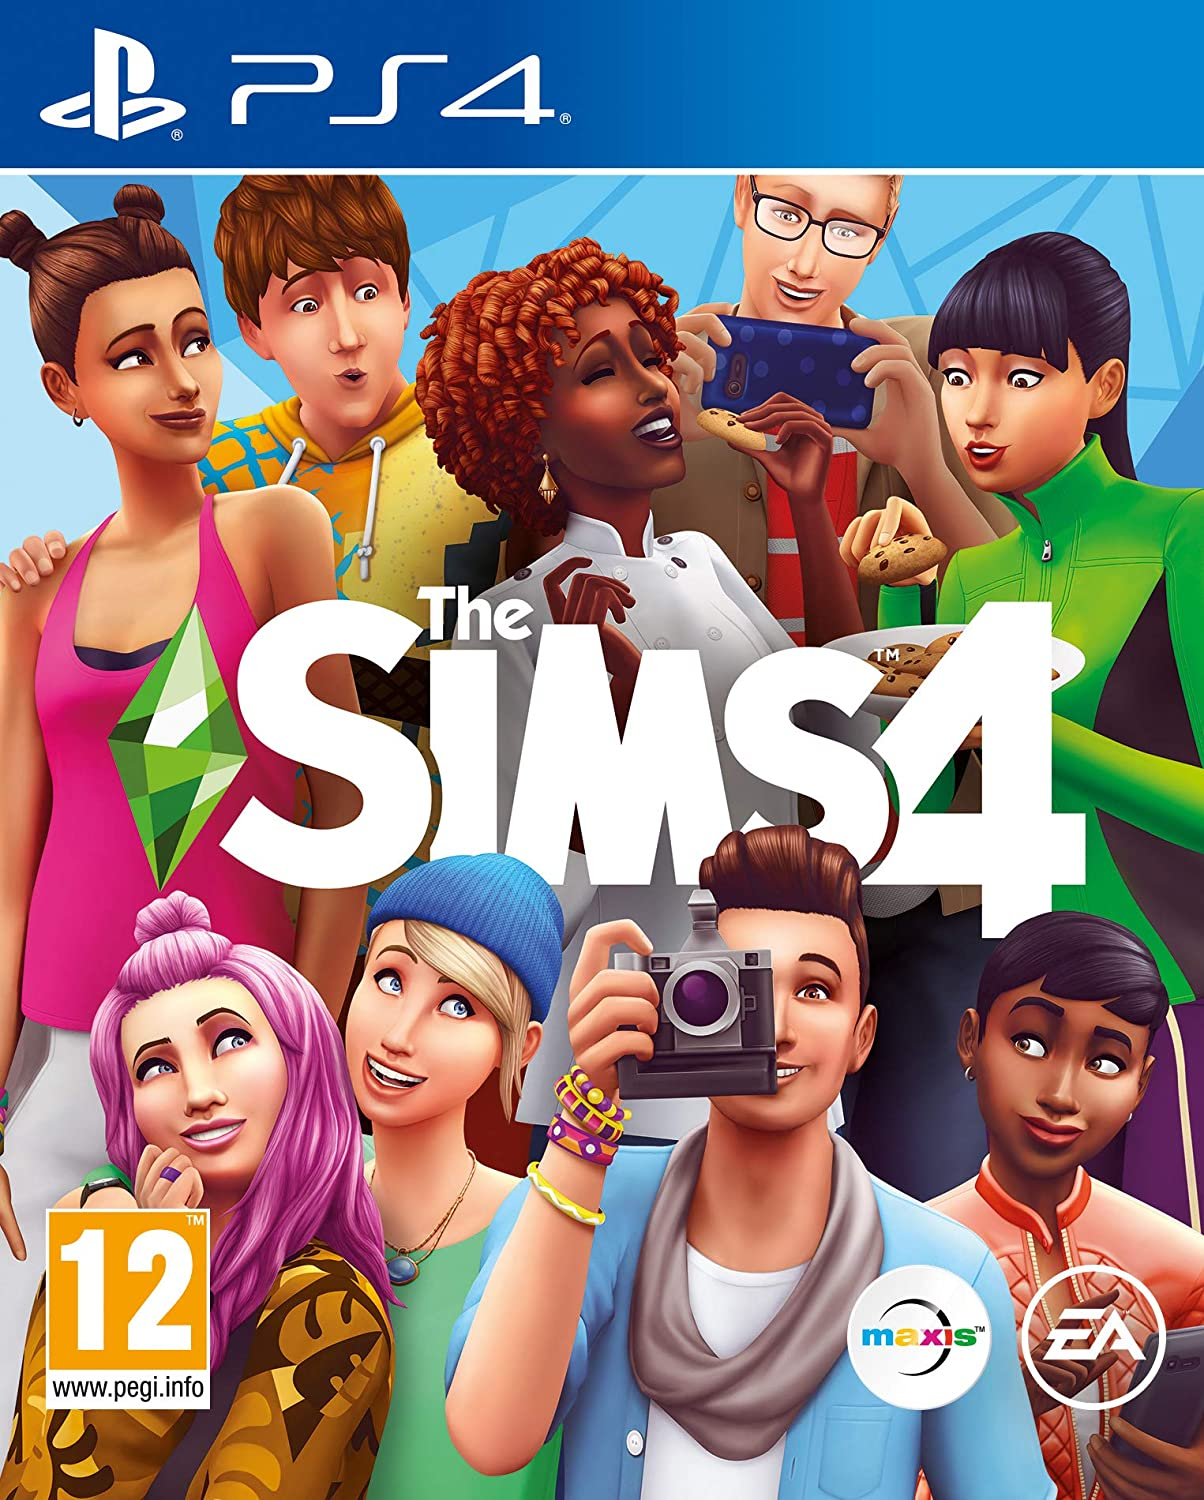 The Translated Sims 4 famous PS4